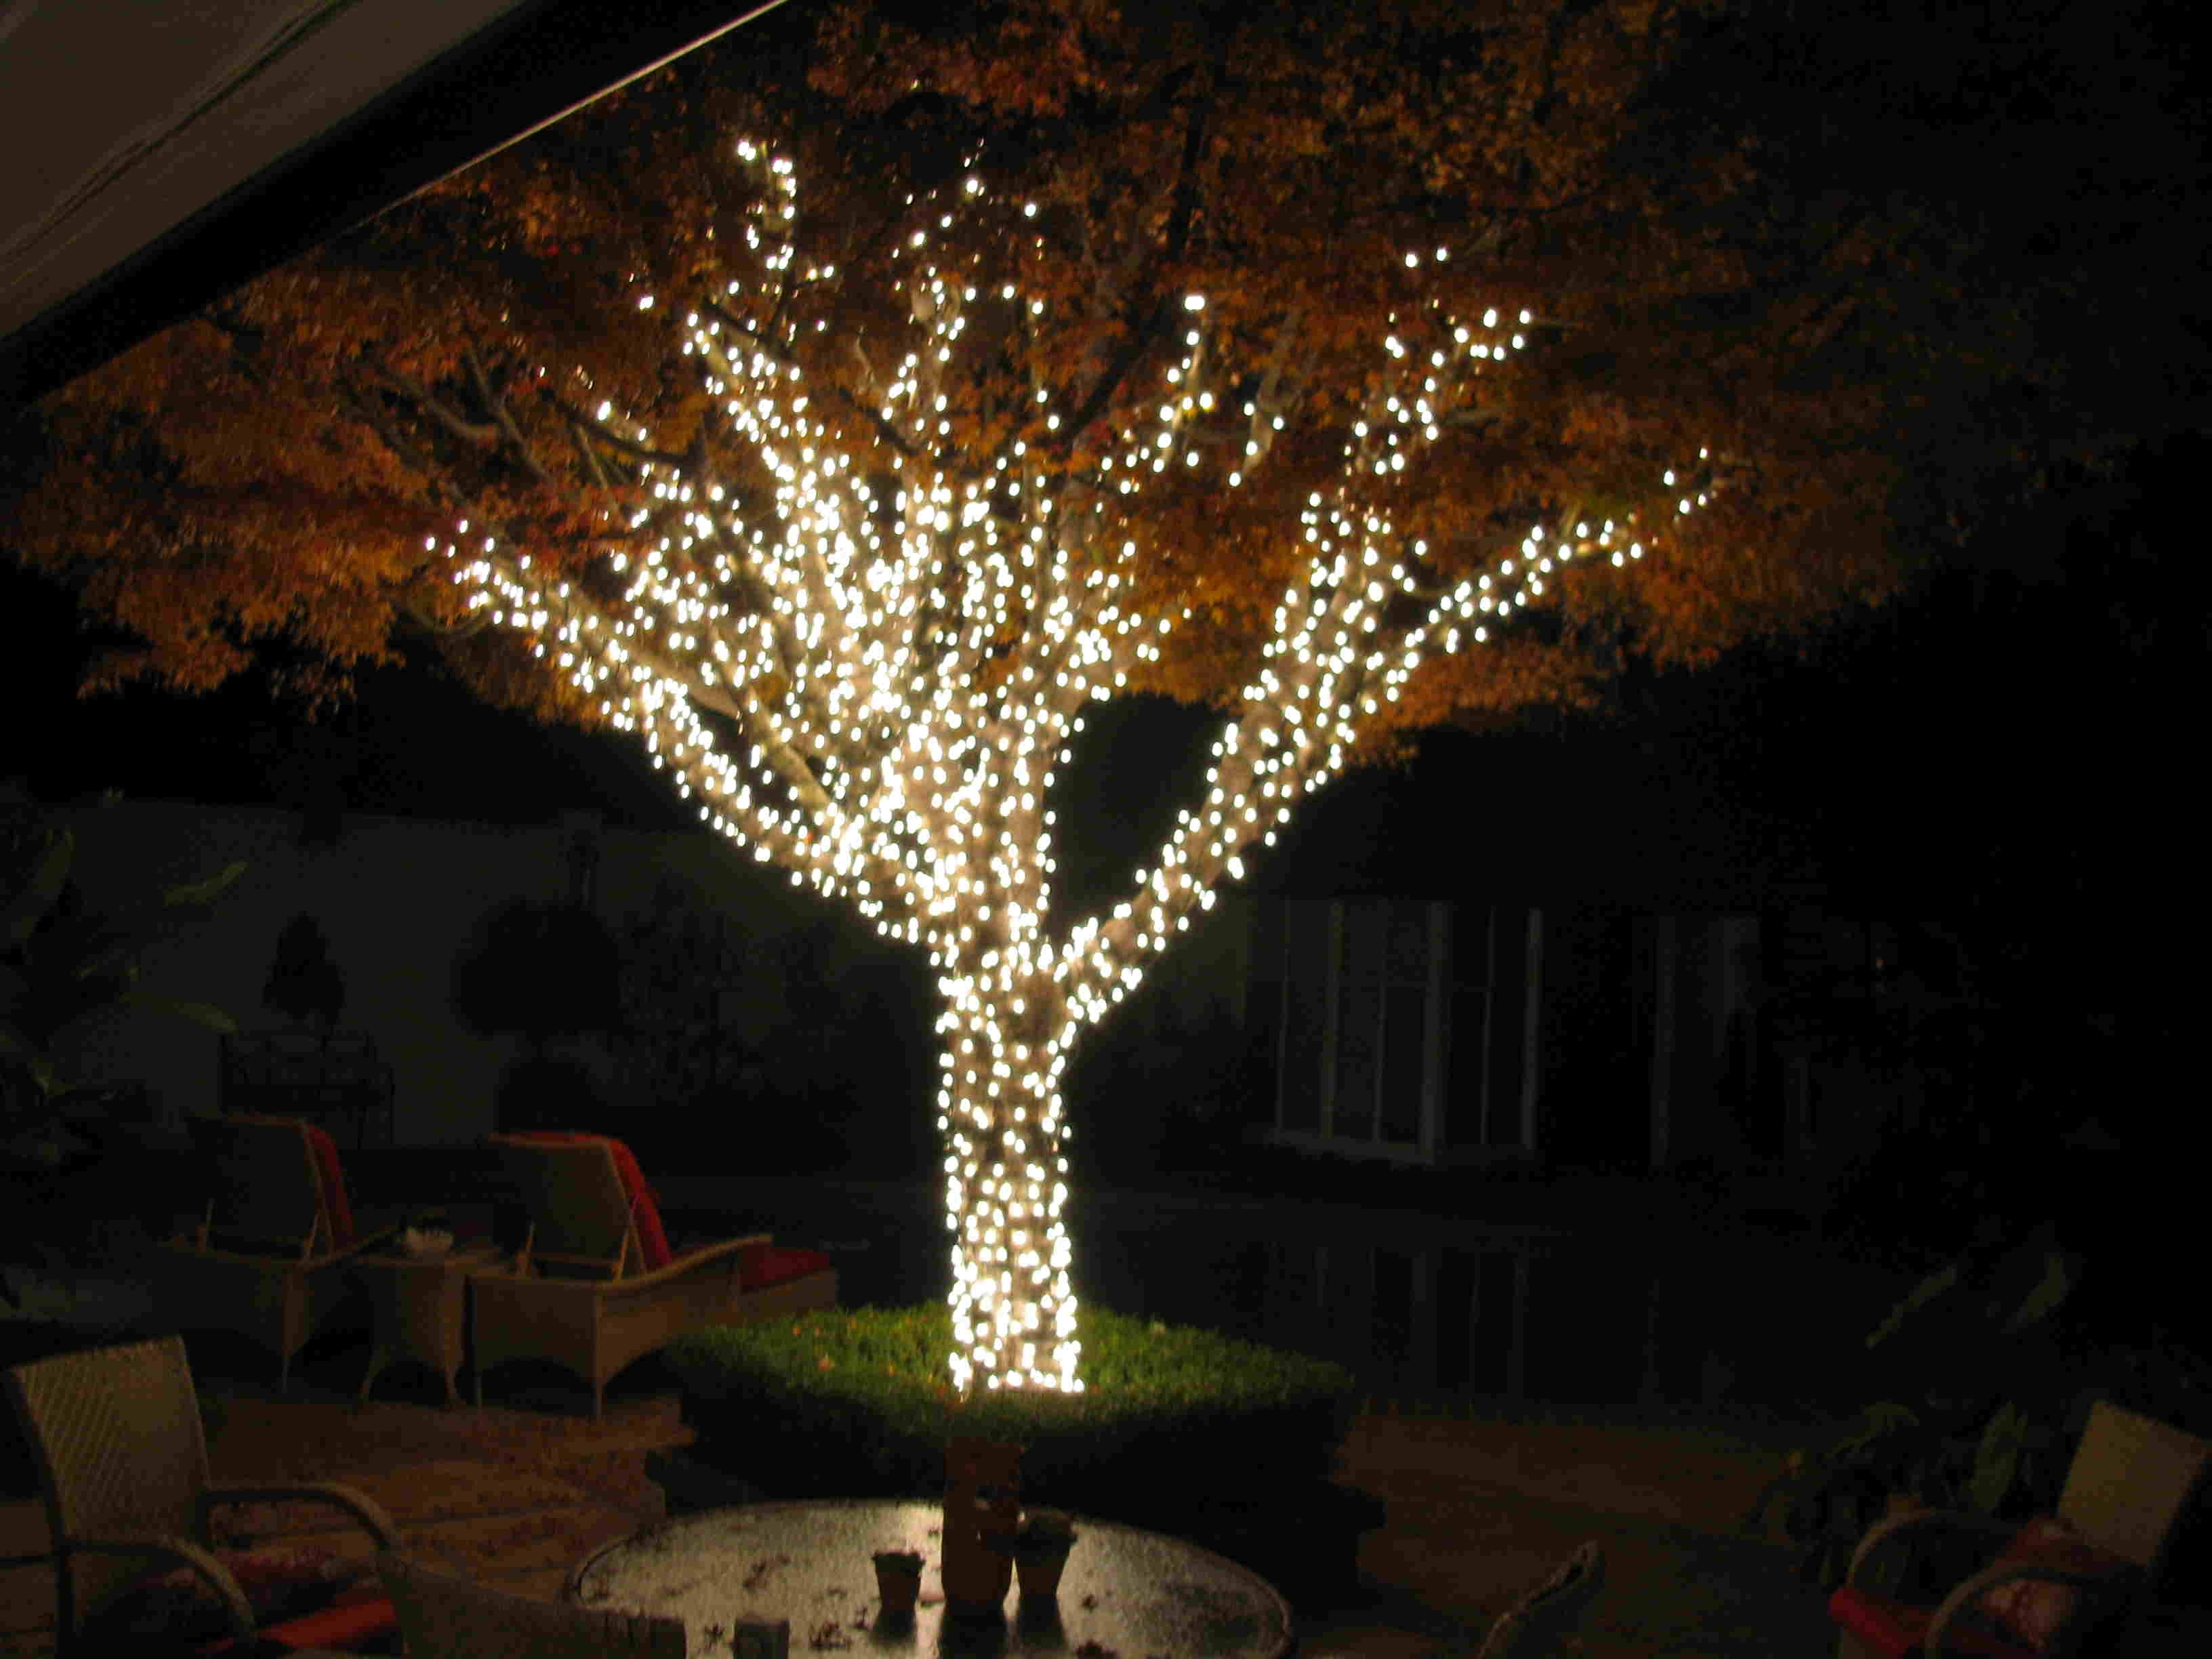 Illuminate Your Backyard And Garden With Outdoor Tree Lights with regard to Outdoor Lanterns for Trees (Image 12 of 20)